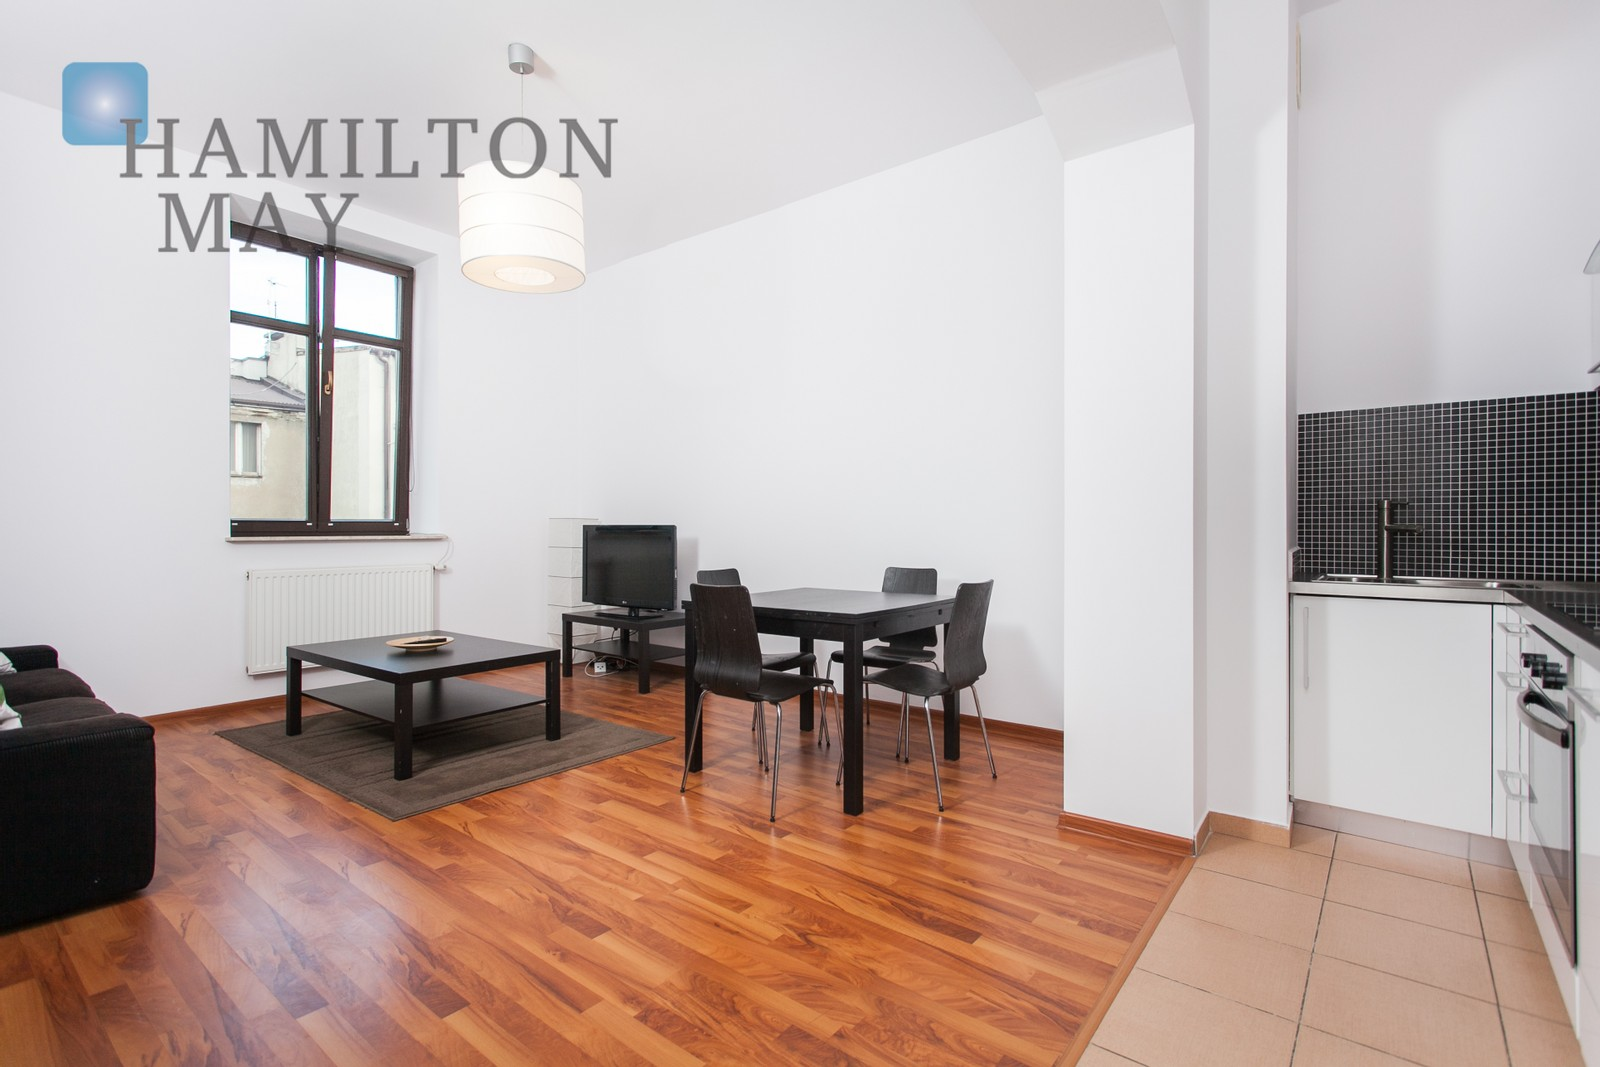 For sale, a spacious 2 bedroom apartment located in Stare Podgórze - ul. Lwowska Krakow for sale